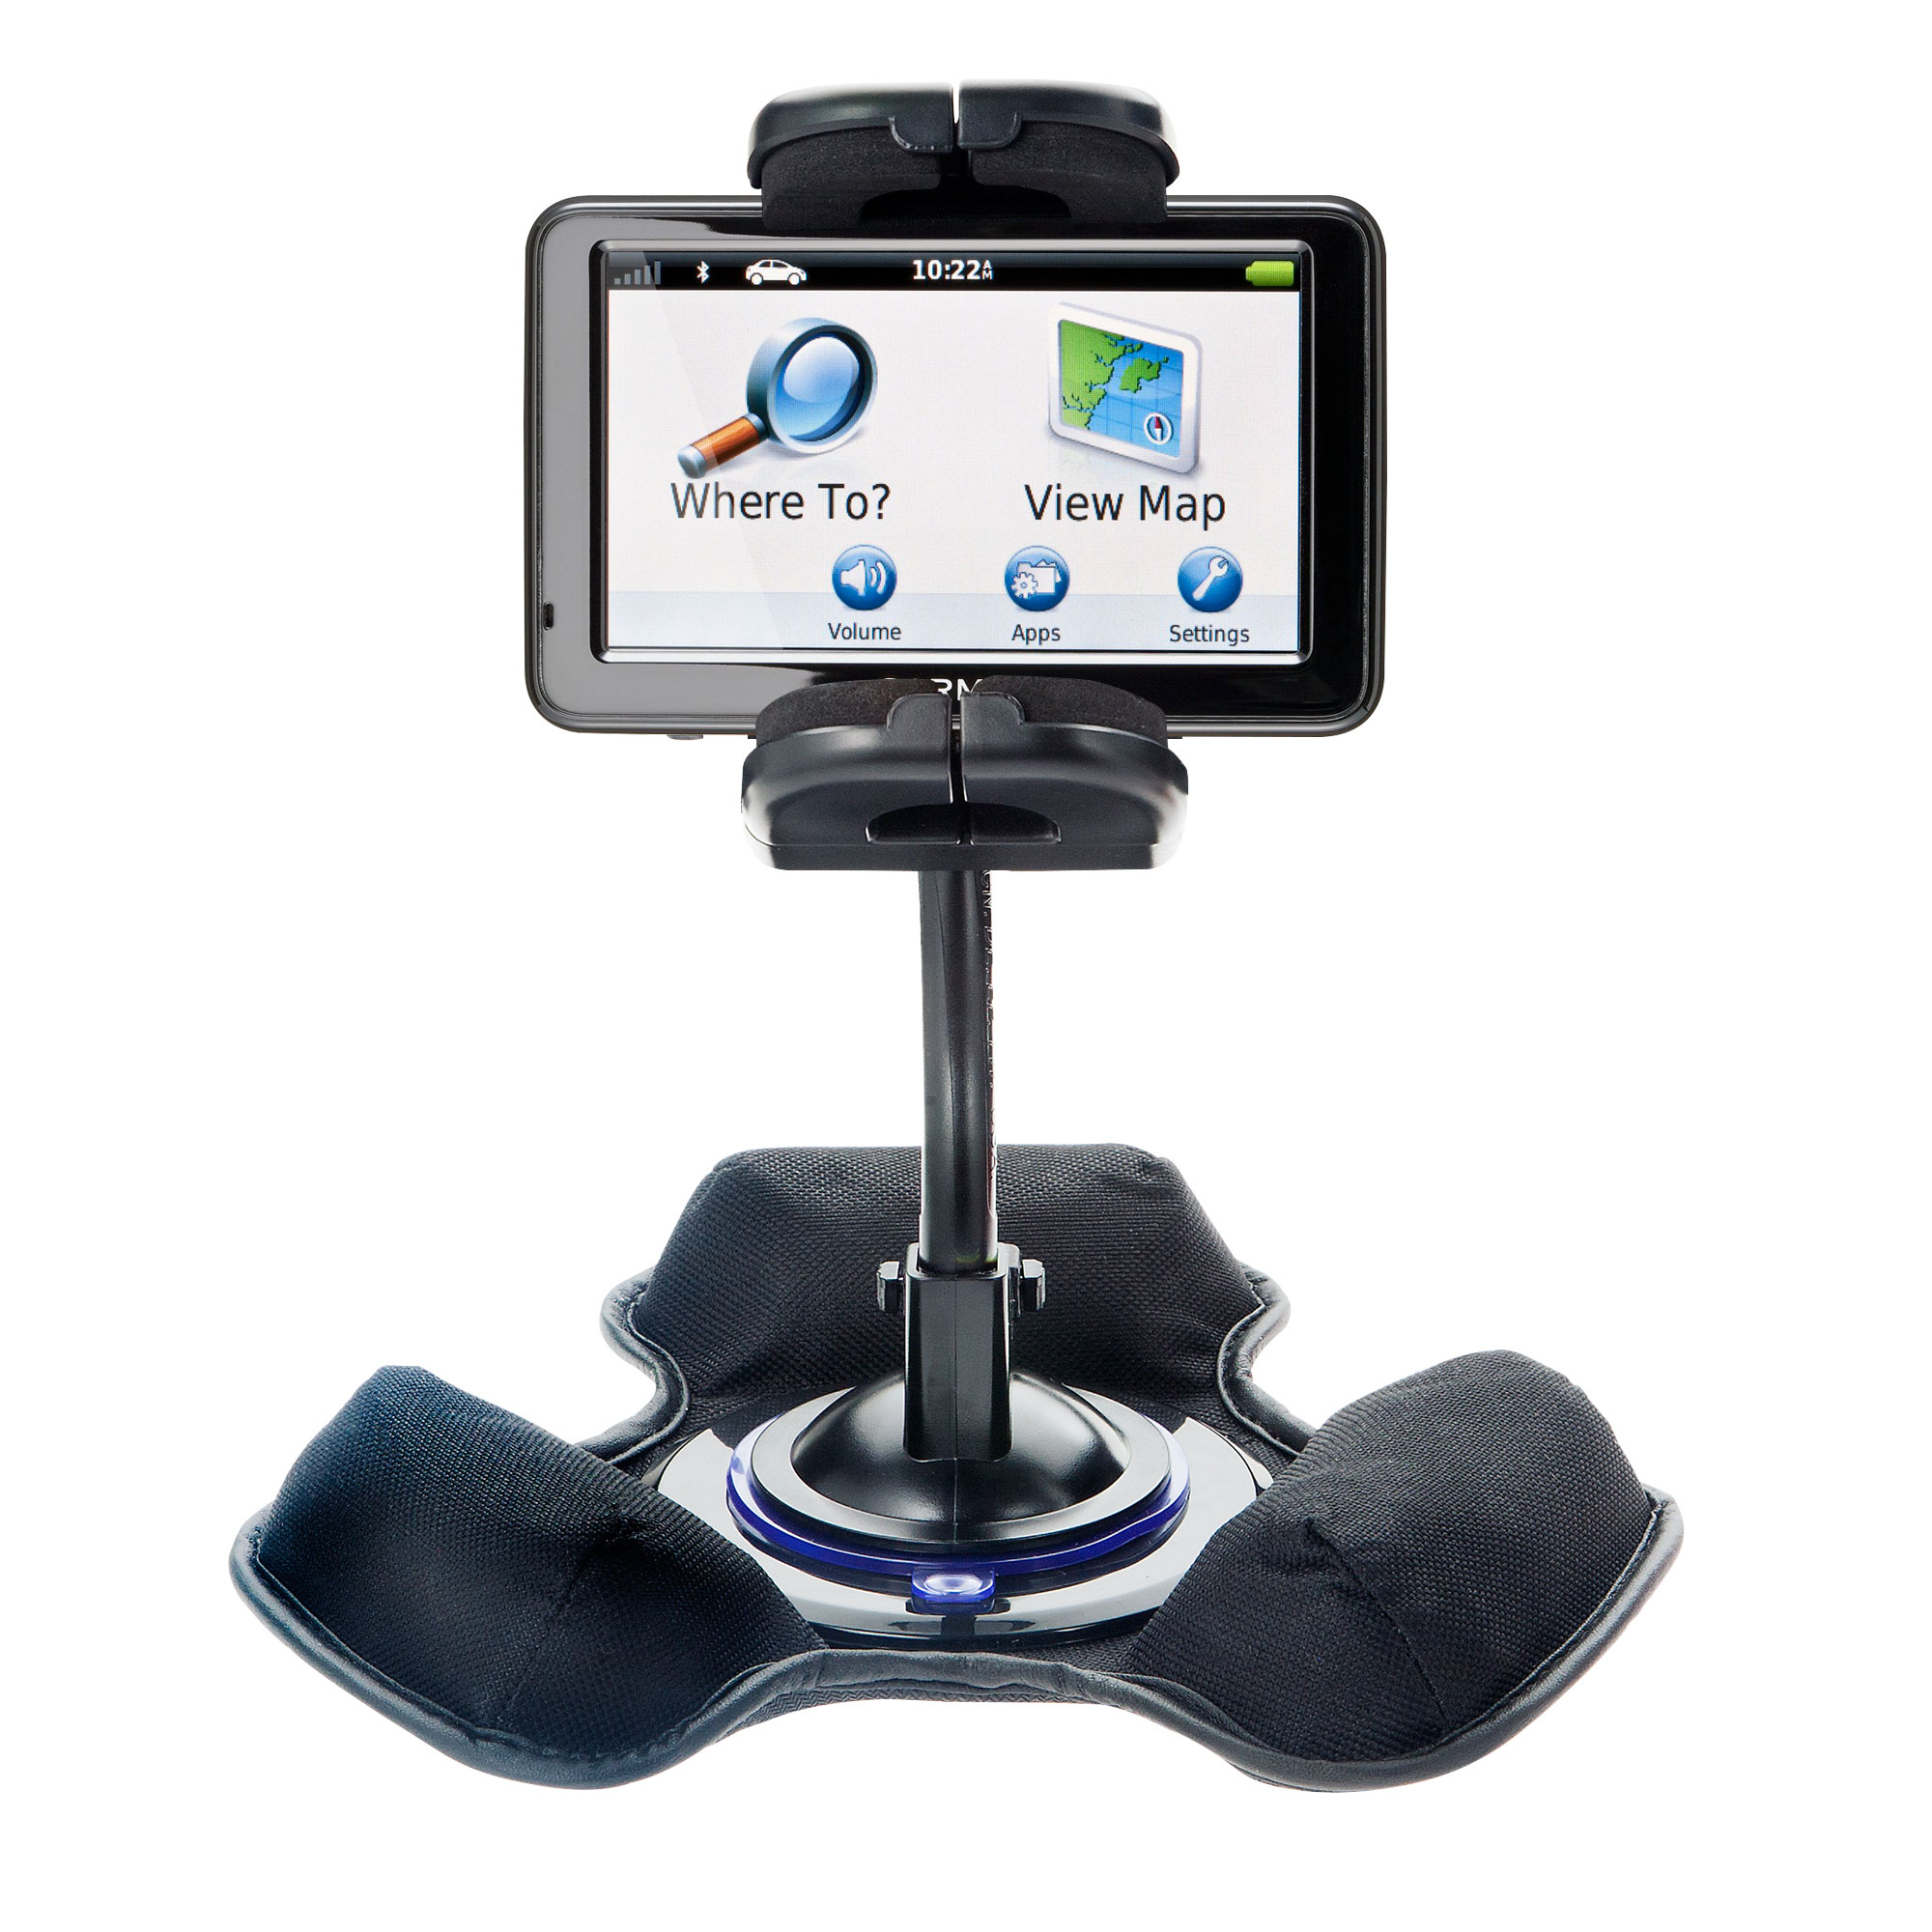 Dash and Windshield Holder compatible with the Garmin Nuvi 2455 2475LT 2495LMT 2455LMT